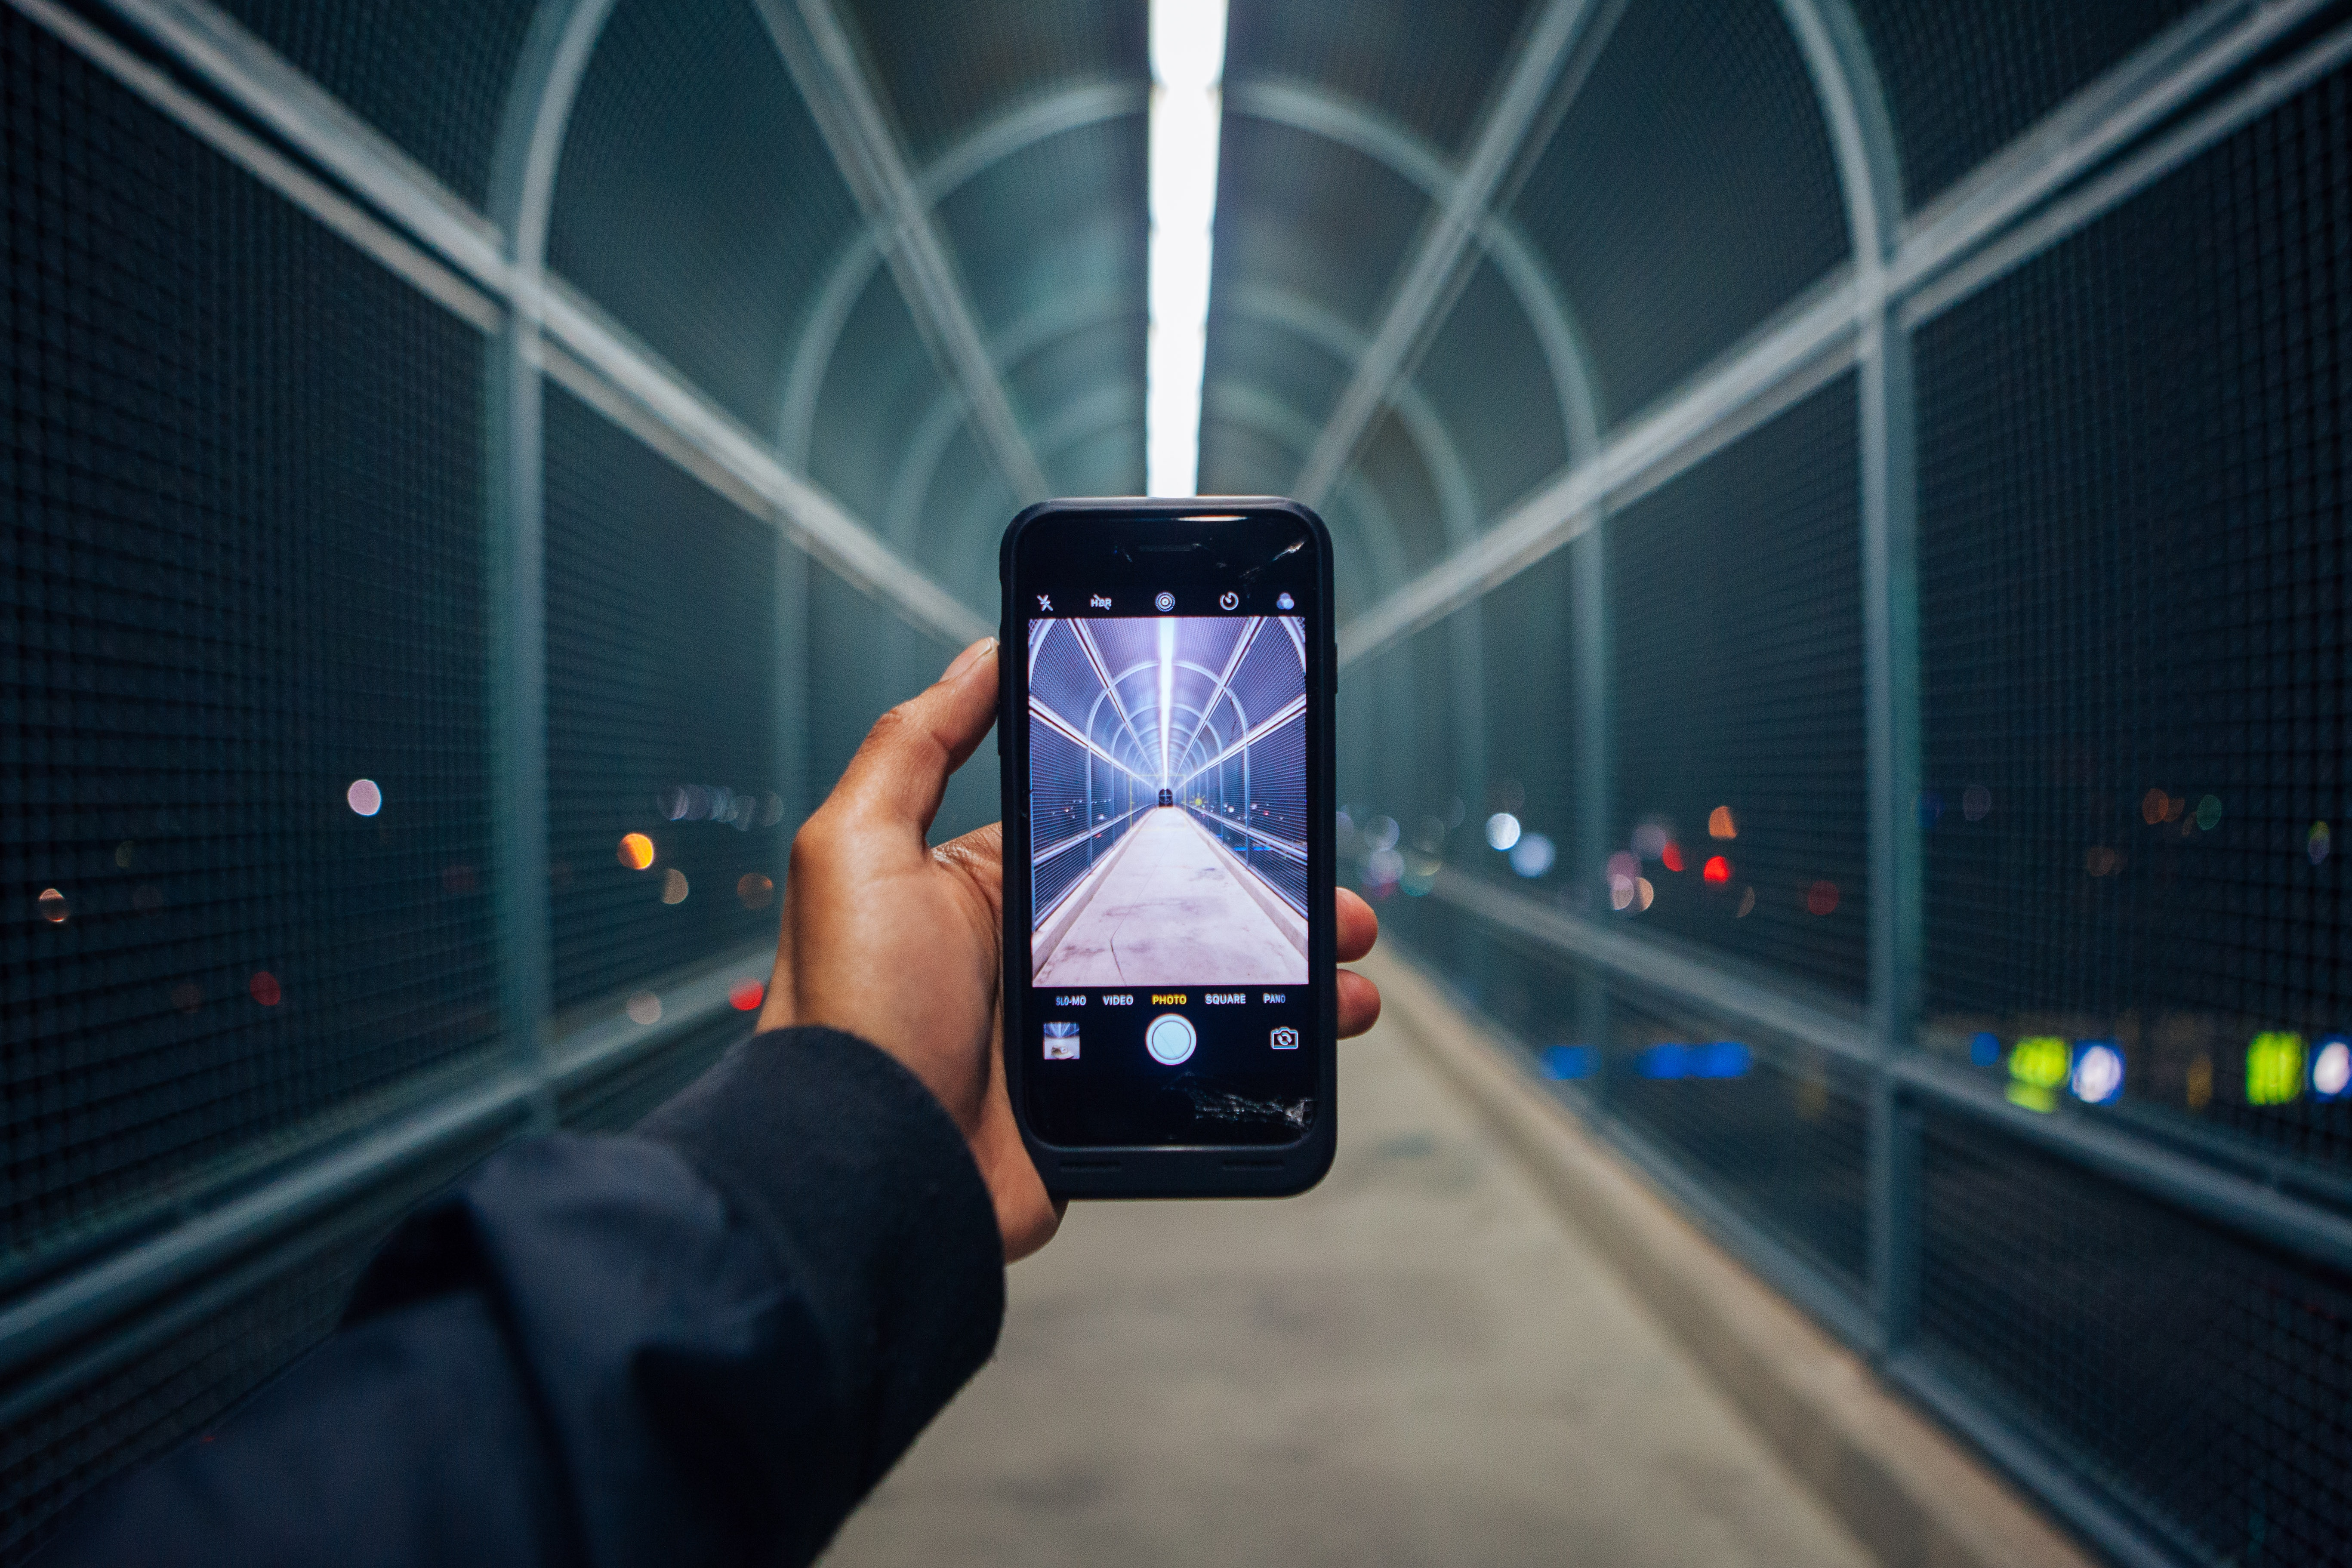 Hand holding a smart phone and taking a photo of a tunnel.